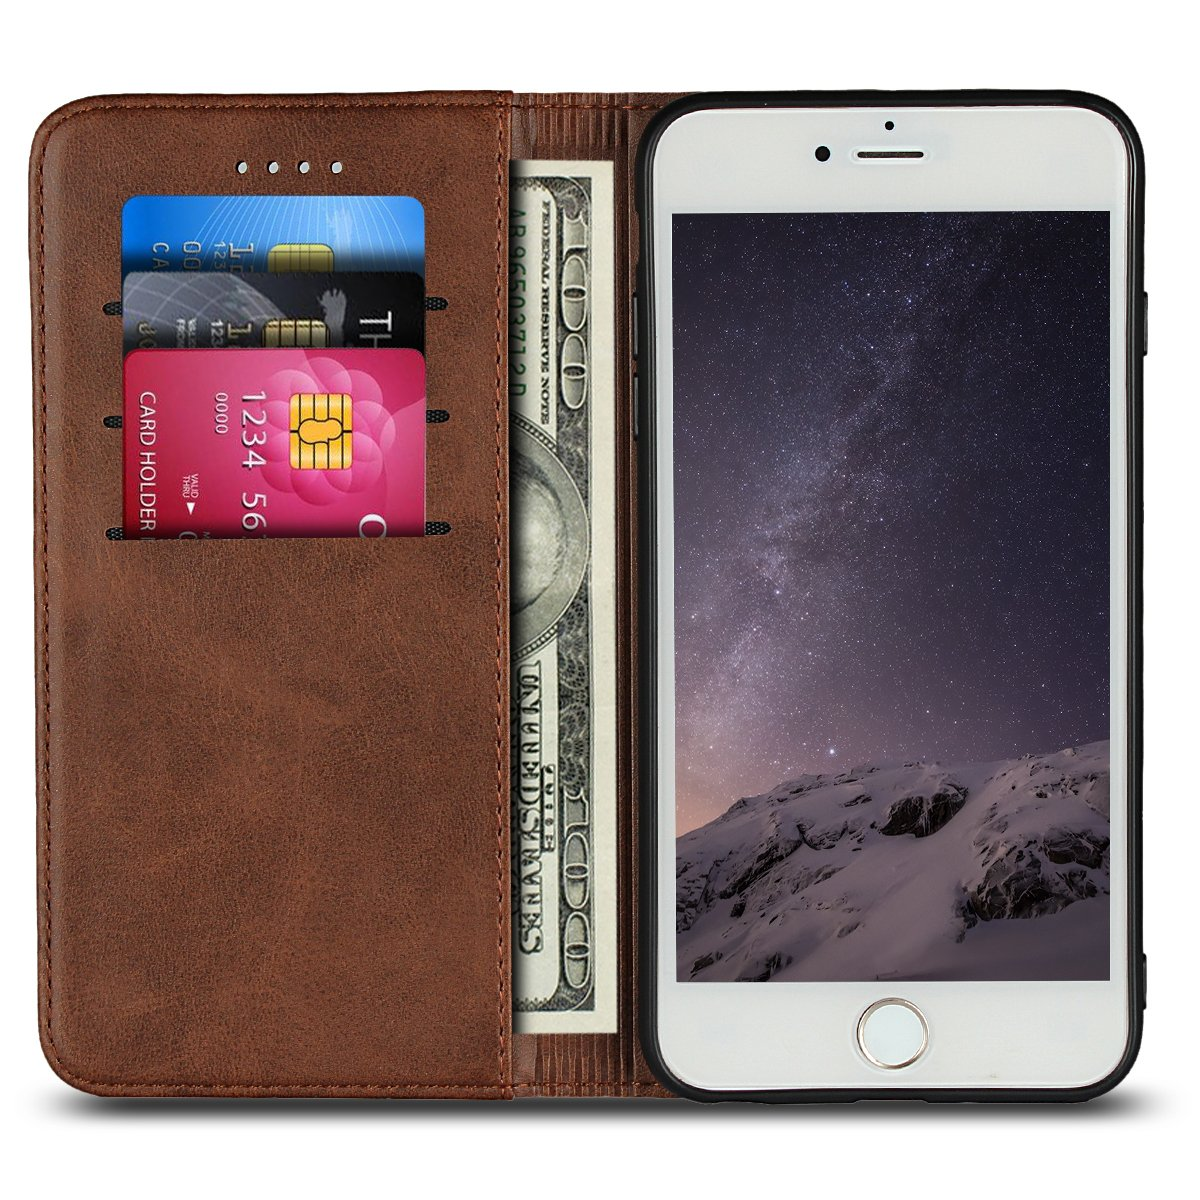 iPhone 7 Phone Case, iPhone 8 Phone Case, PU Leather Folio Flip Wallet Case with Credit Card Holder Magnetic Closure Protective Cell Phone Cover for Apple iPhone 7 / iPhone 8 4.7 inch - Dark Brown HAOHUI